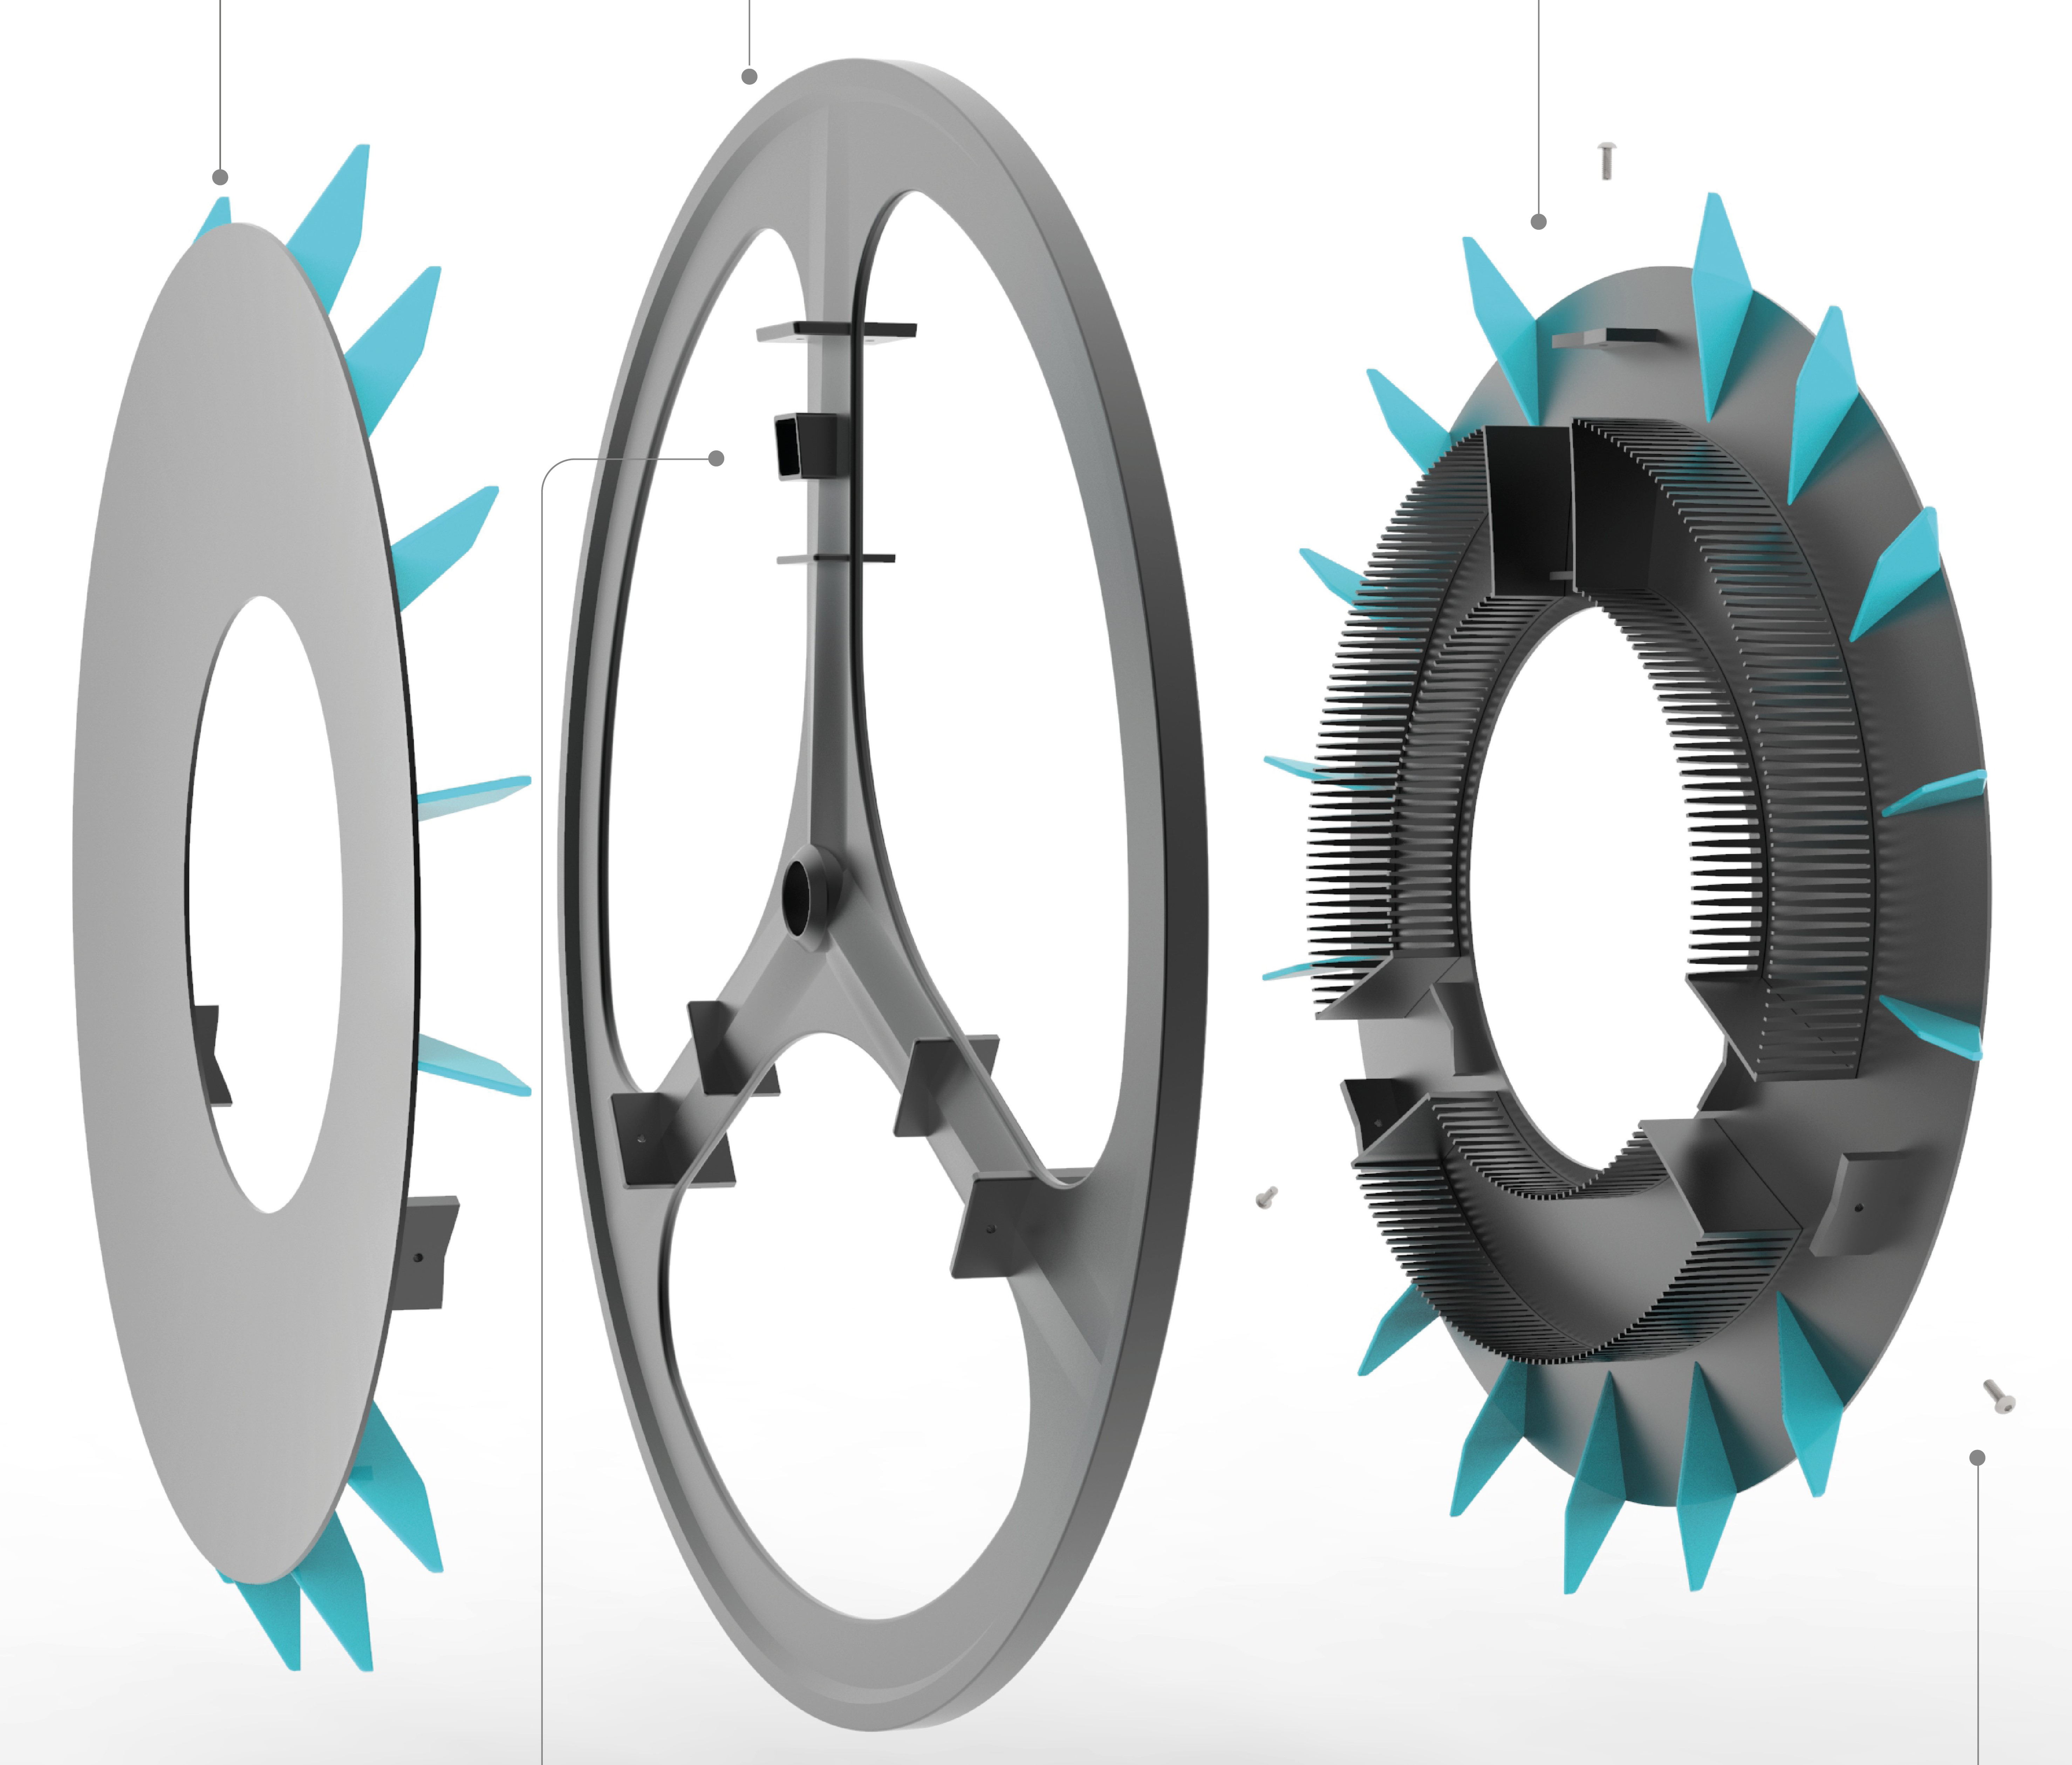 London designer uses 3D printing to produce air-filtering bicycle wheel